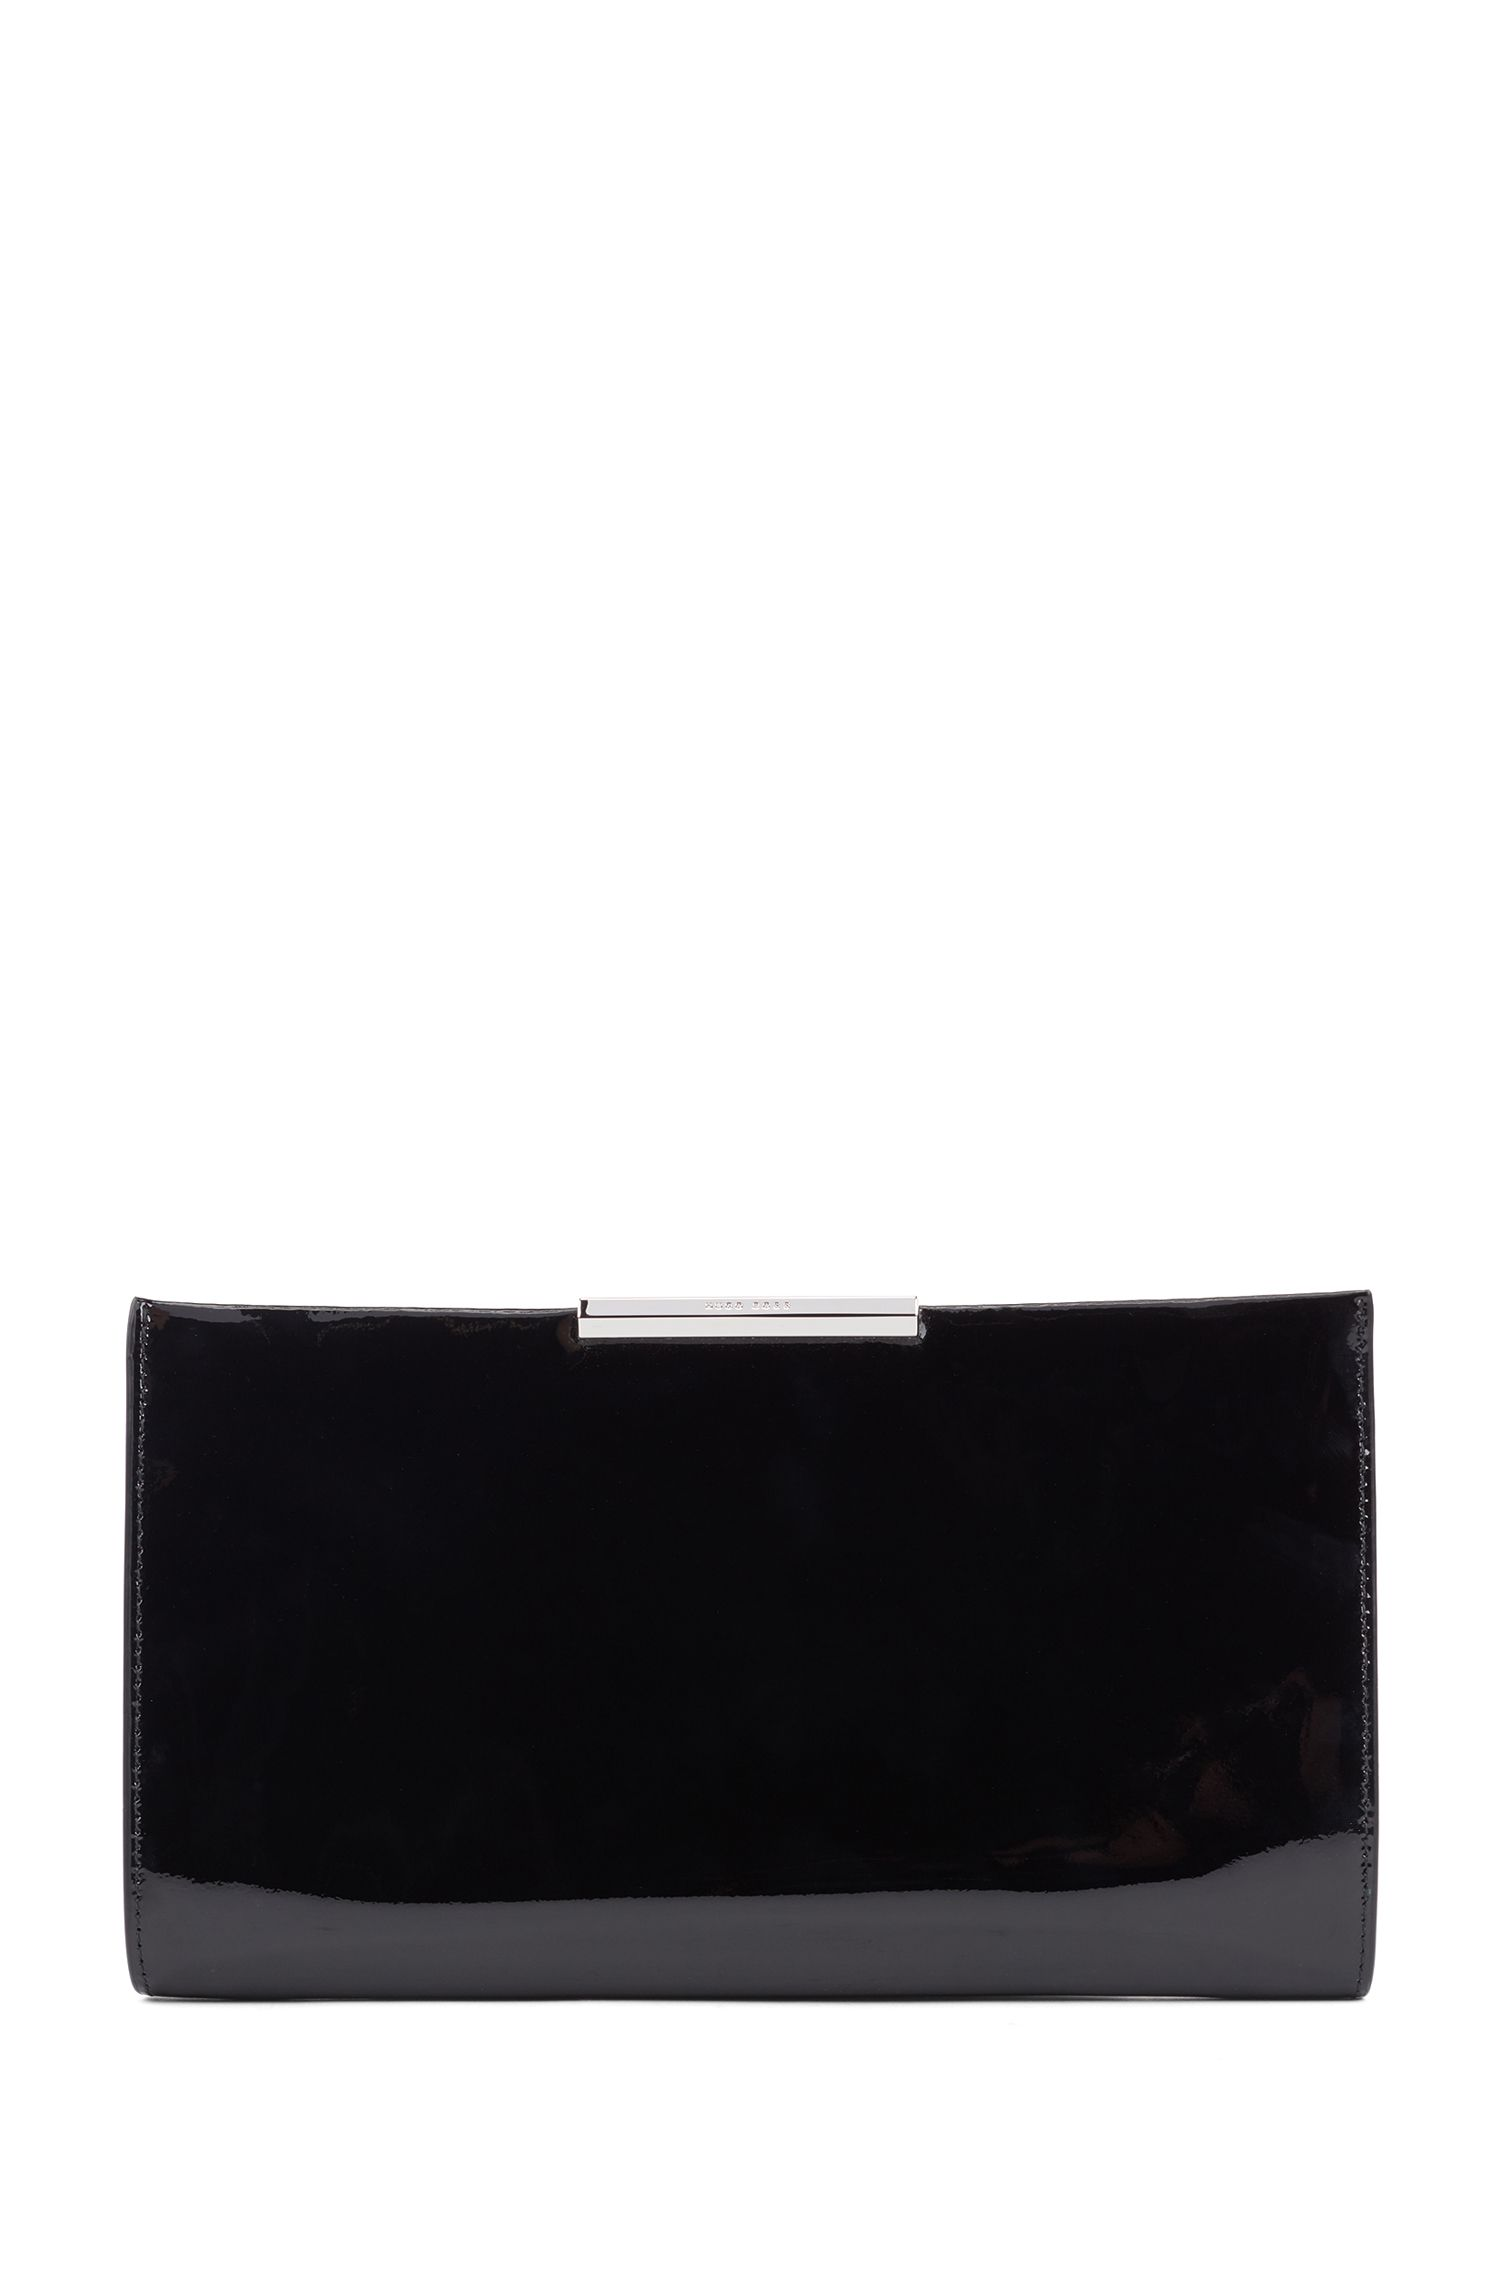 Patent-leather clutch with detachable chain strap, Black